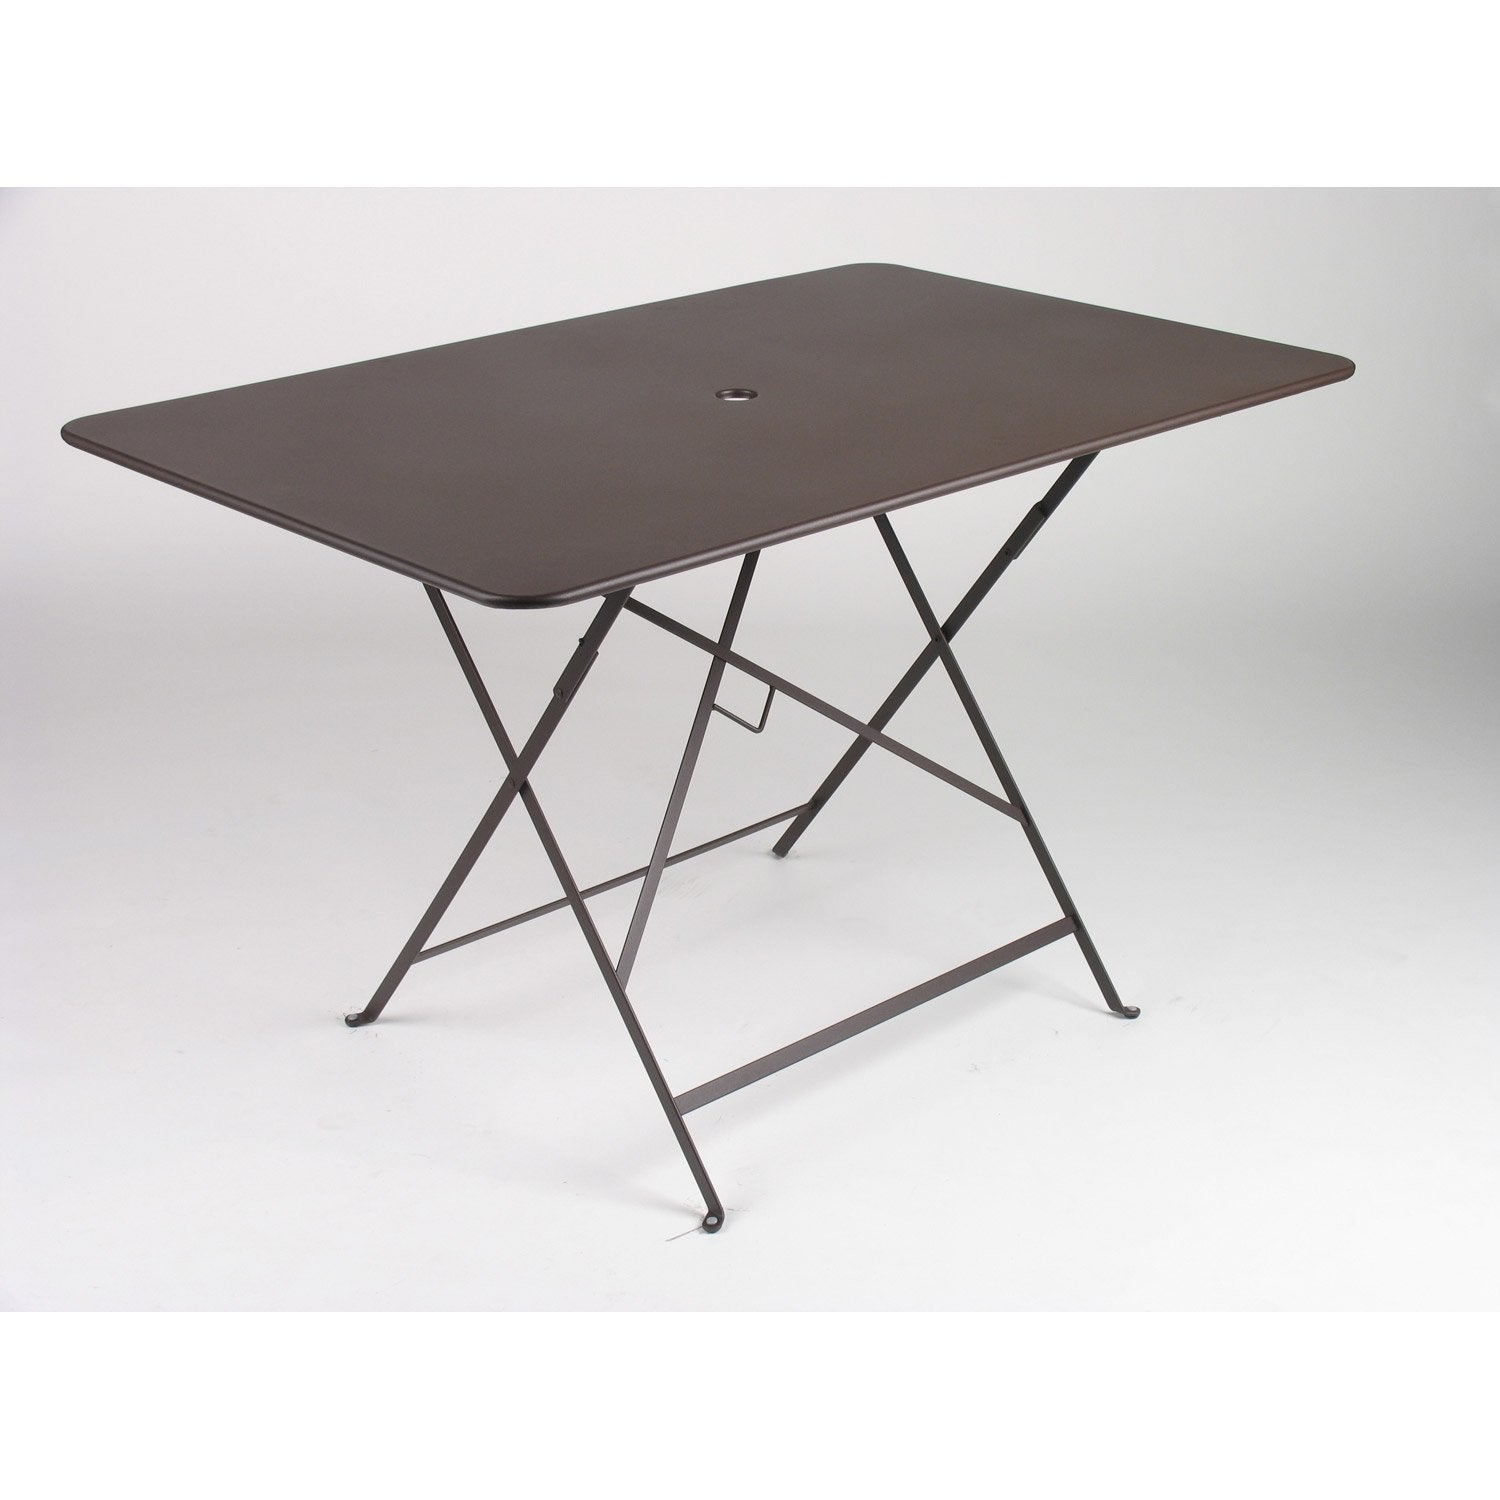 Table de jardin fermob bistro rectangulaire rouille 6 personnes leroy merlin - Leroy merlin table jardin ...